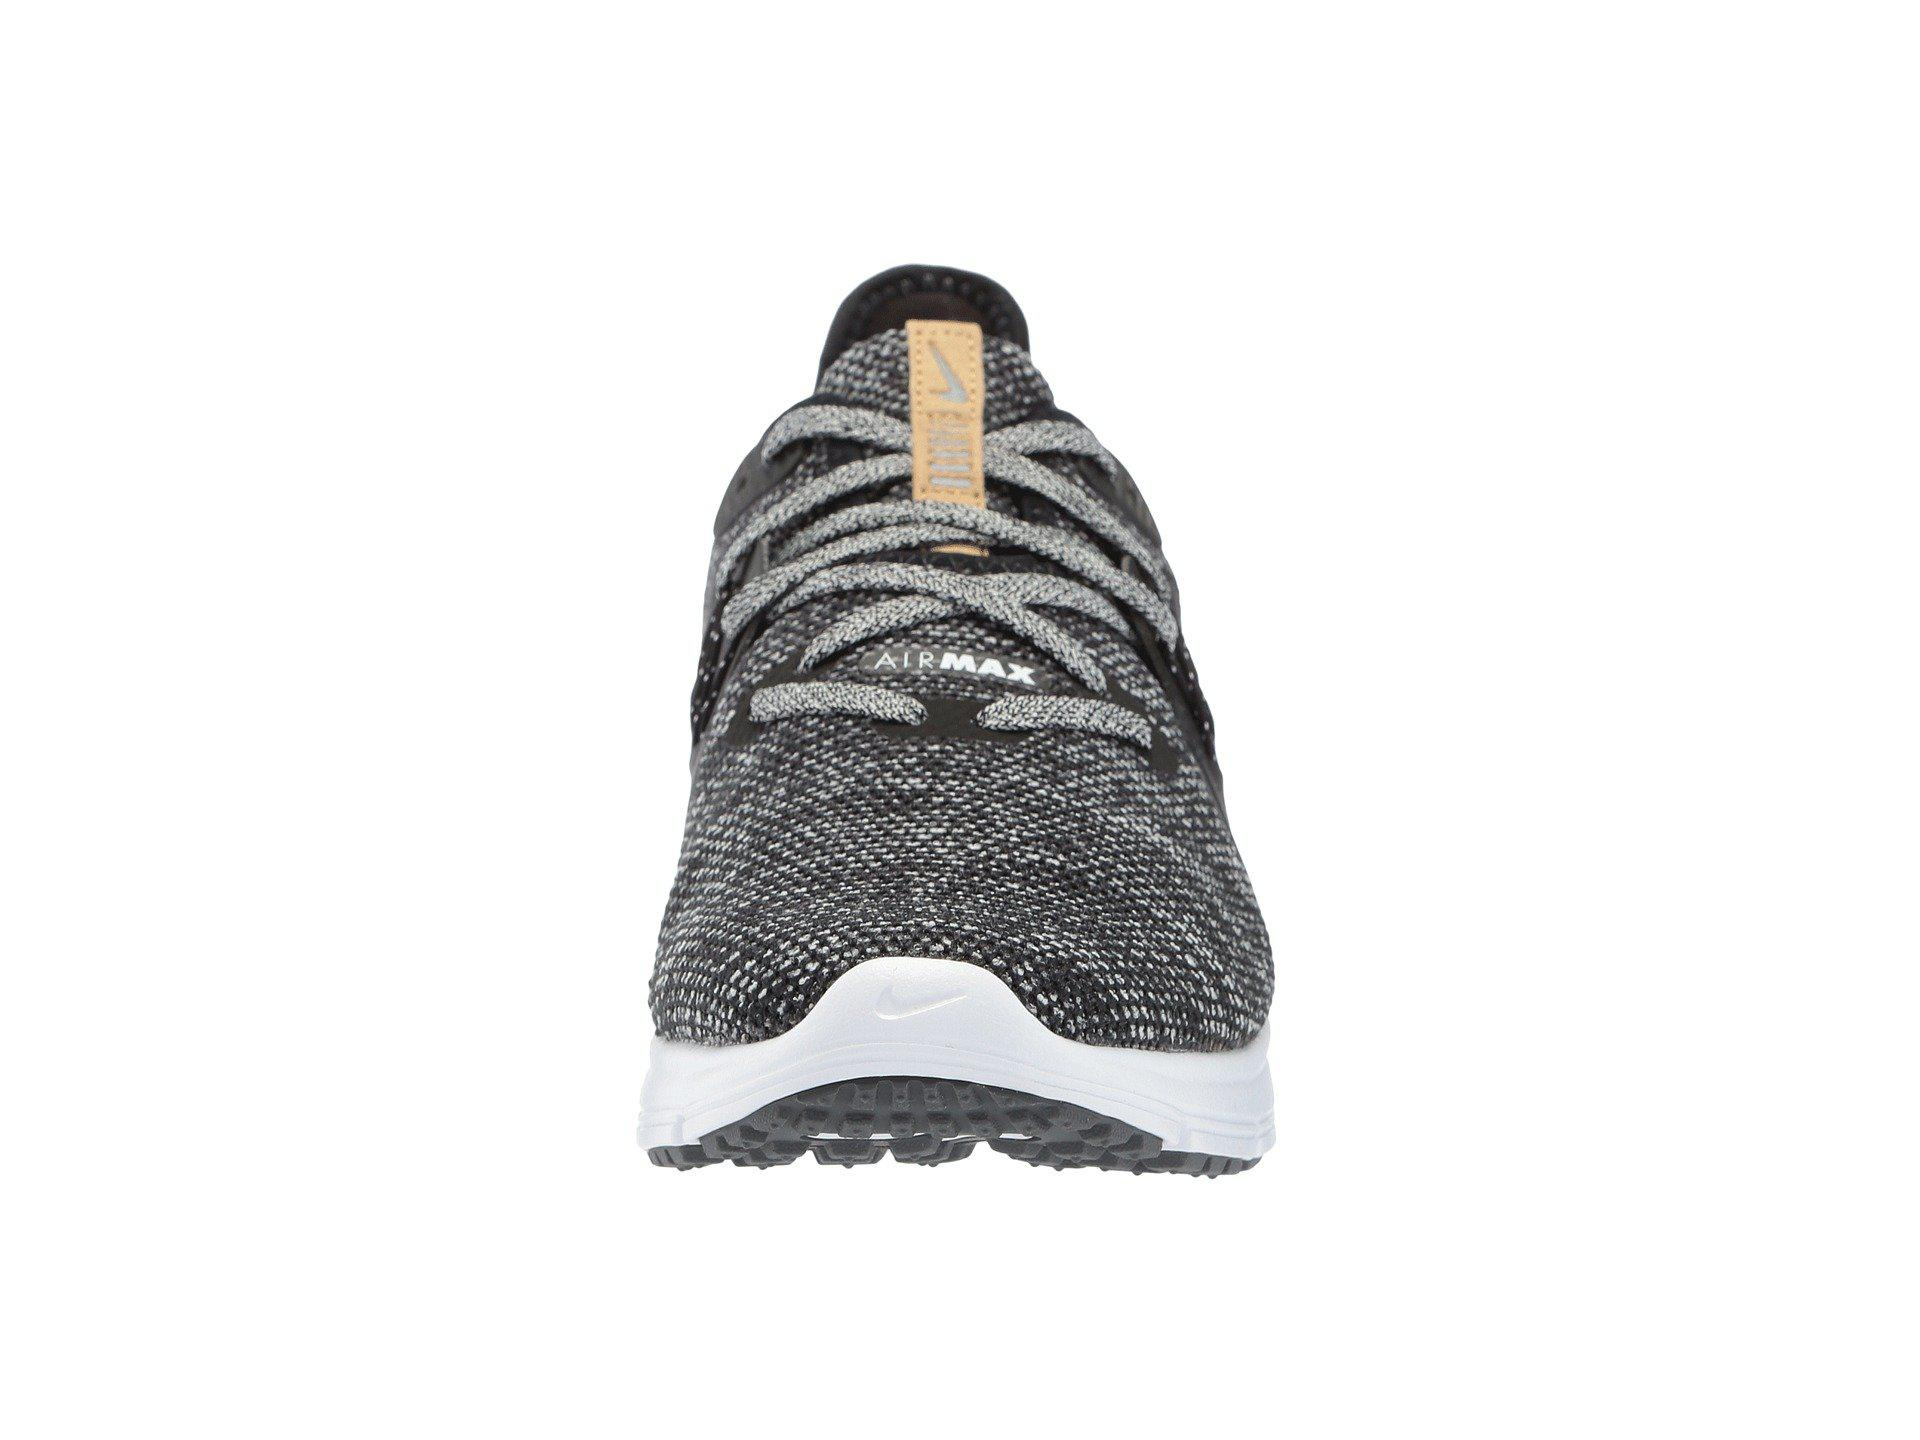 Gray Air Max Sequent 3 (whitehyper Jadeblack) Women's Shoes